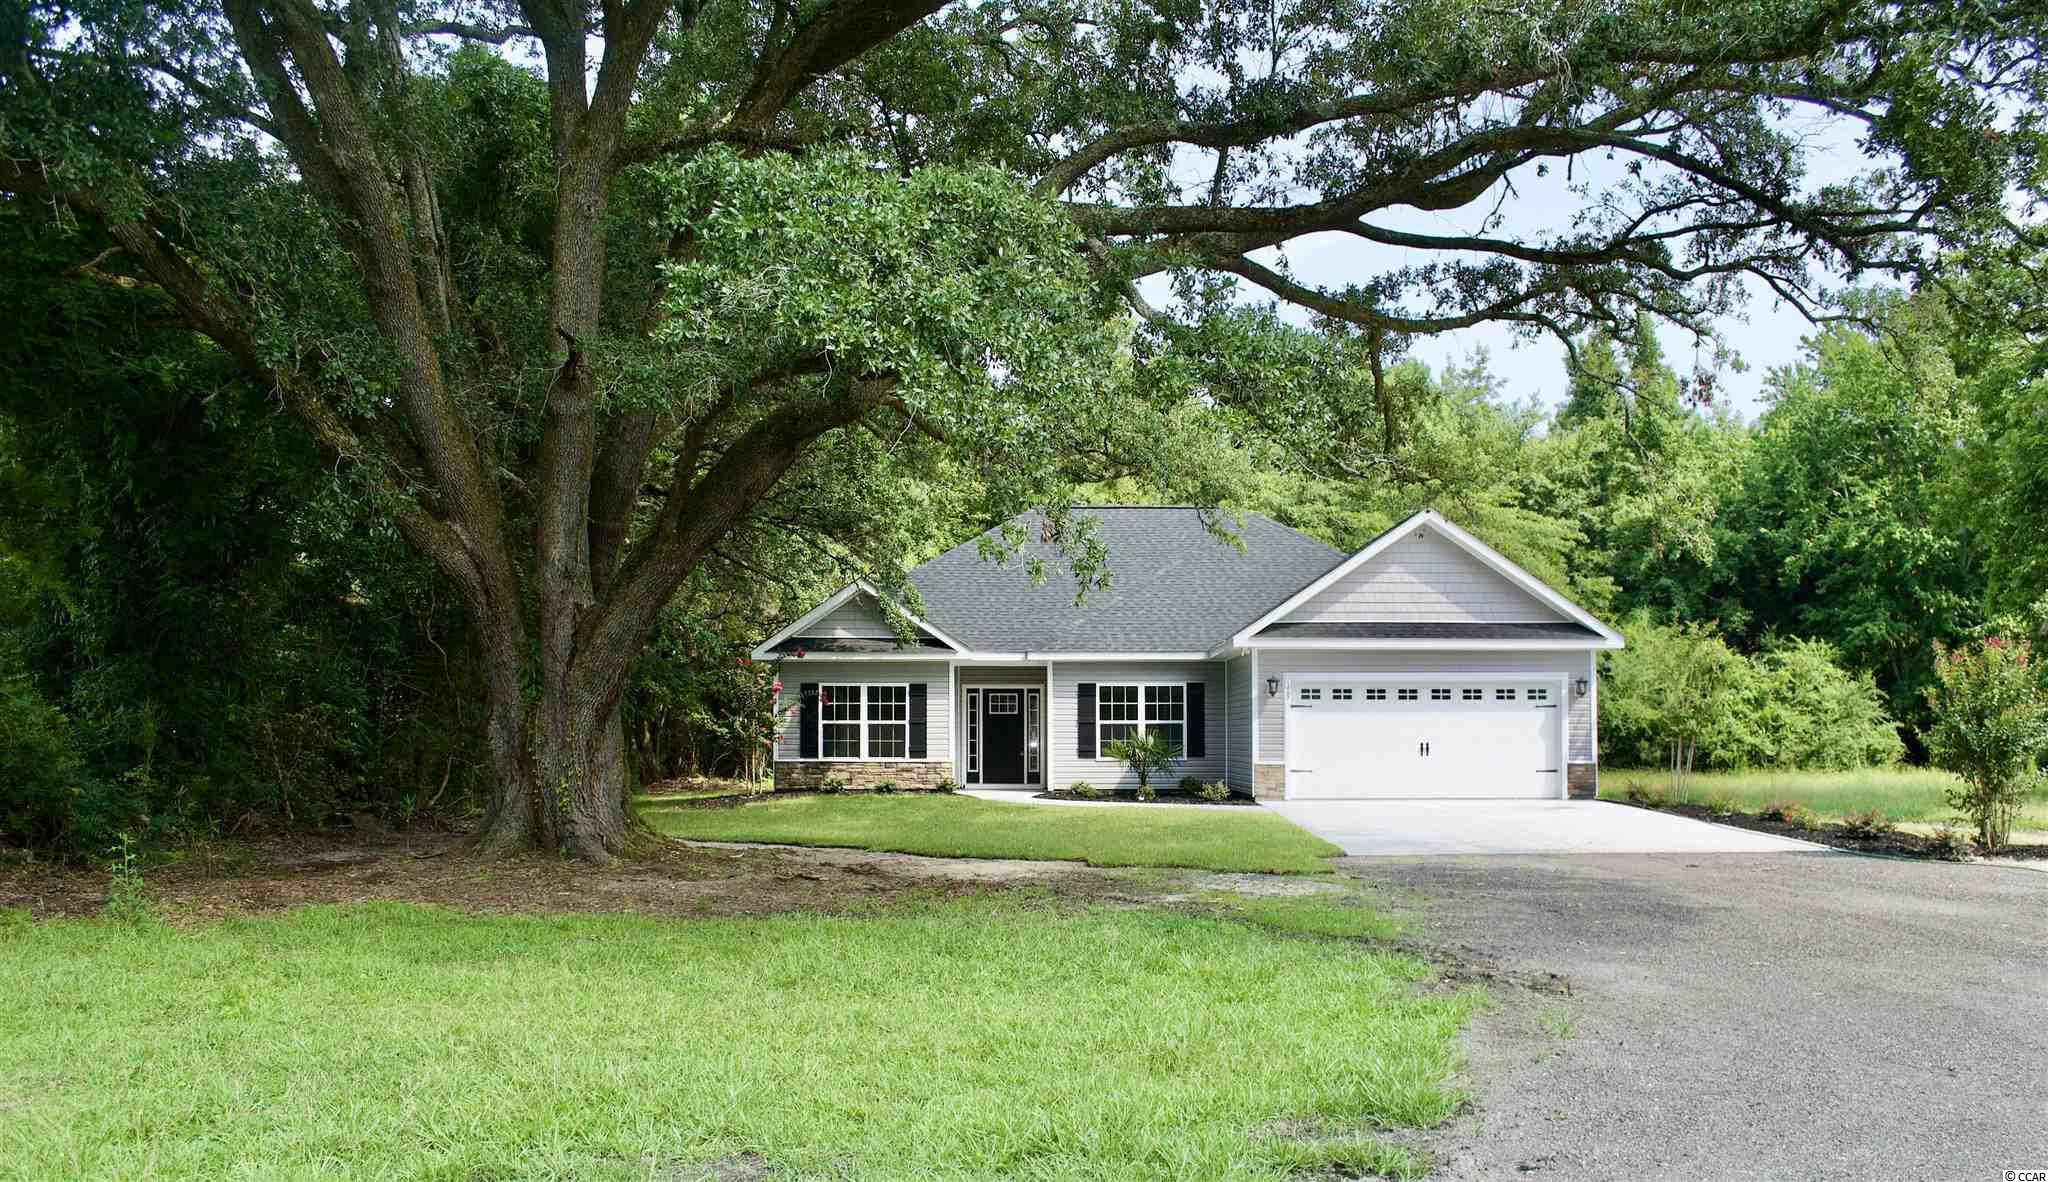 This beautiful custom built home sits on .60 acre lot with large century old live oak trees and just a few minutes from downtown Conway. Expect fantastic upgrades throughout, the kitchen will boast white shaker style 42' cabinets with oil rubbed bronze handles and feature soft closed drawers, granite counter tops with a tile backsplash and stainless steel appliances. Luxury wood vinyl flooring will be throughout the home. The 4th bedroom is designed to be a multifunctional room that could be used as a home office or a formal dining room and boast beautiful french doors. Some other home features will include shiplap wall accents, trim package, fireplace, upgraded tile shower, 10ft. ceilings, security system, Carolina room with an outside patio area. Located just a few miles from shopping, dining, waterfront and everything downtown Conway has to offer. Don't miss this opportunity. Schedule your showing today!